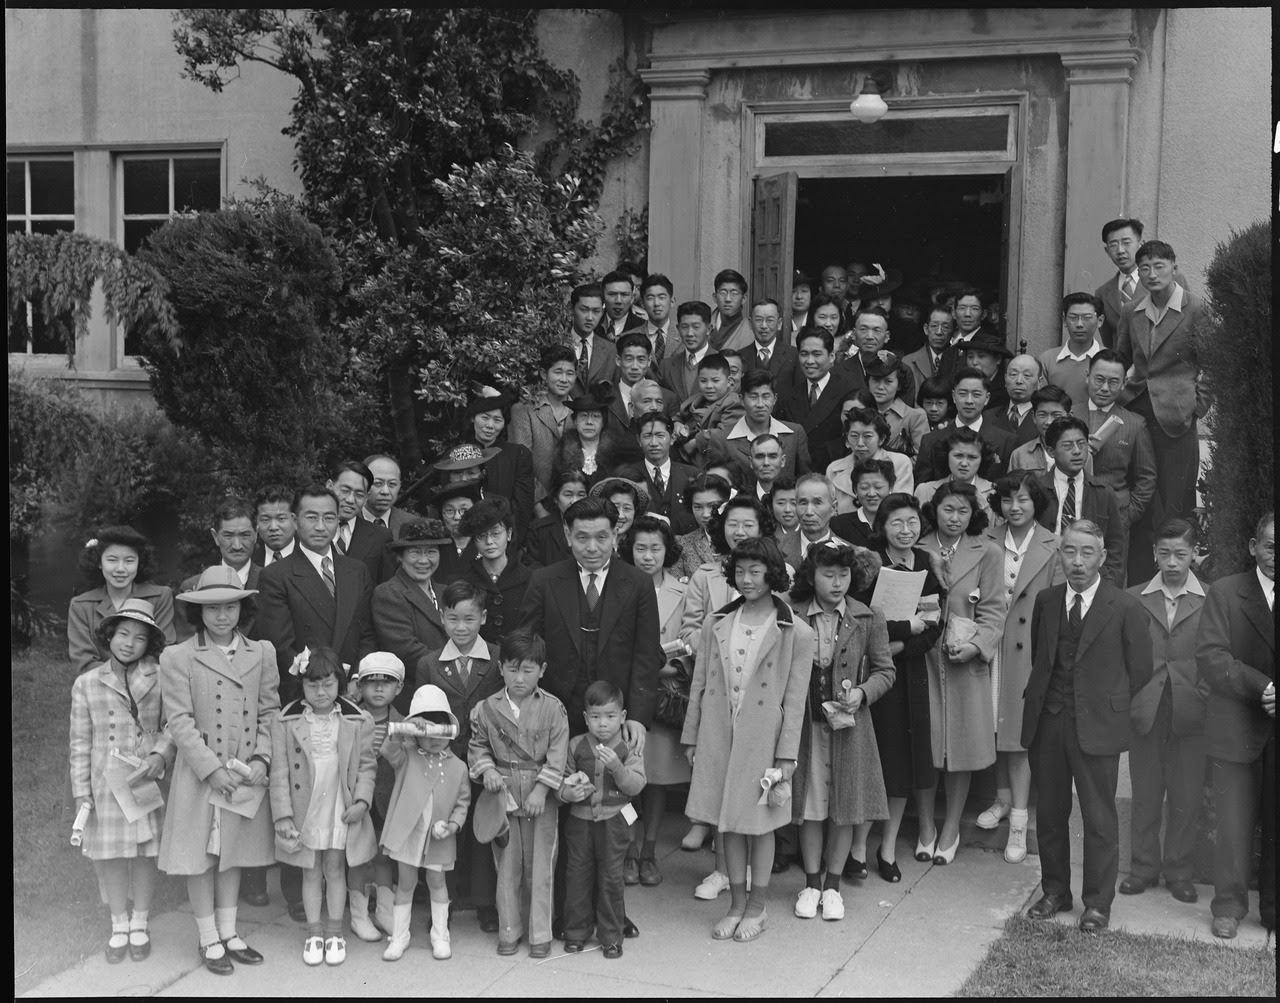 http://upload.wikimedia.org/wikipedia/commons/thumb/1/16/Oakland%2C_California._Members_of_the_Japanese_Independent_Congregational_Church_attend_Easter_servic_._._._-_NARA_-_536048.tif/lossy-page1-1280px-Oakland%2C_California._Members_of_the_Japanese_Independent_Congregational_Church_attend_Easter_servic_._._._-_NARA_-_536048.tif.jpg